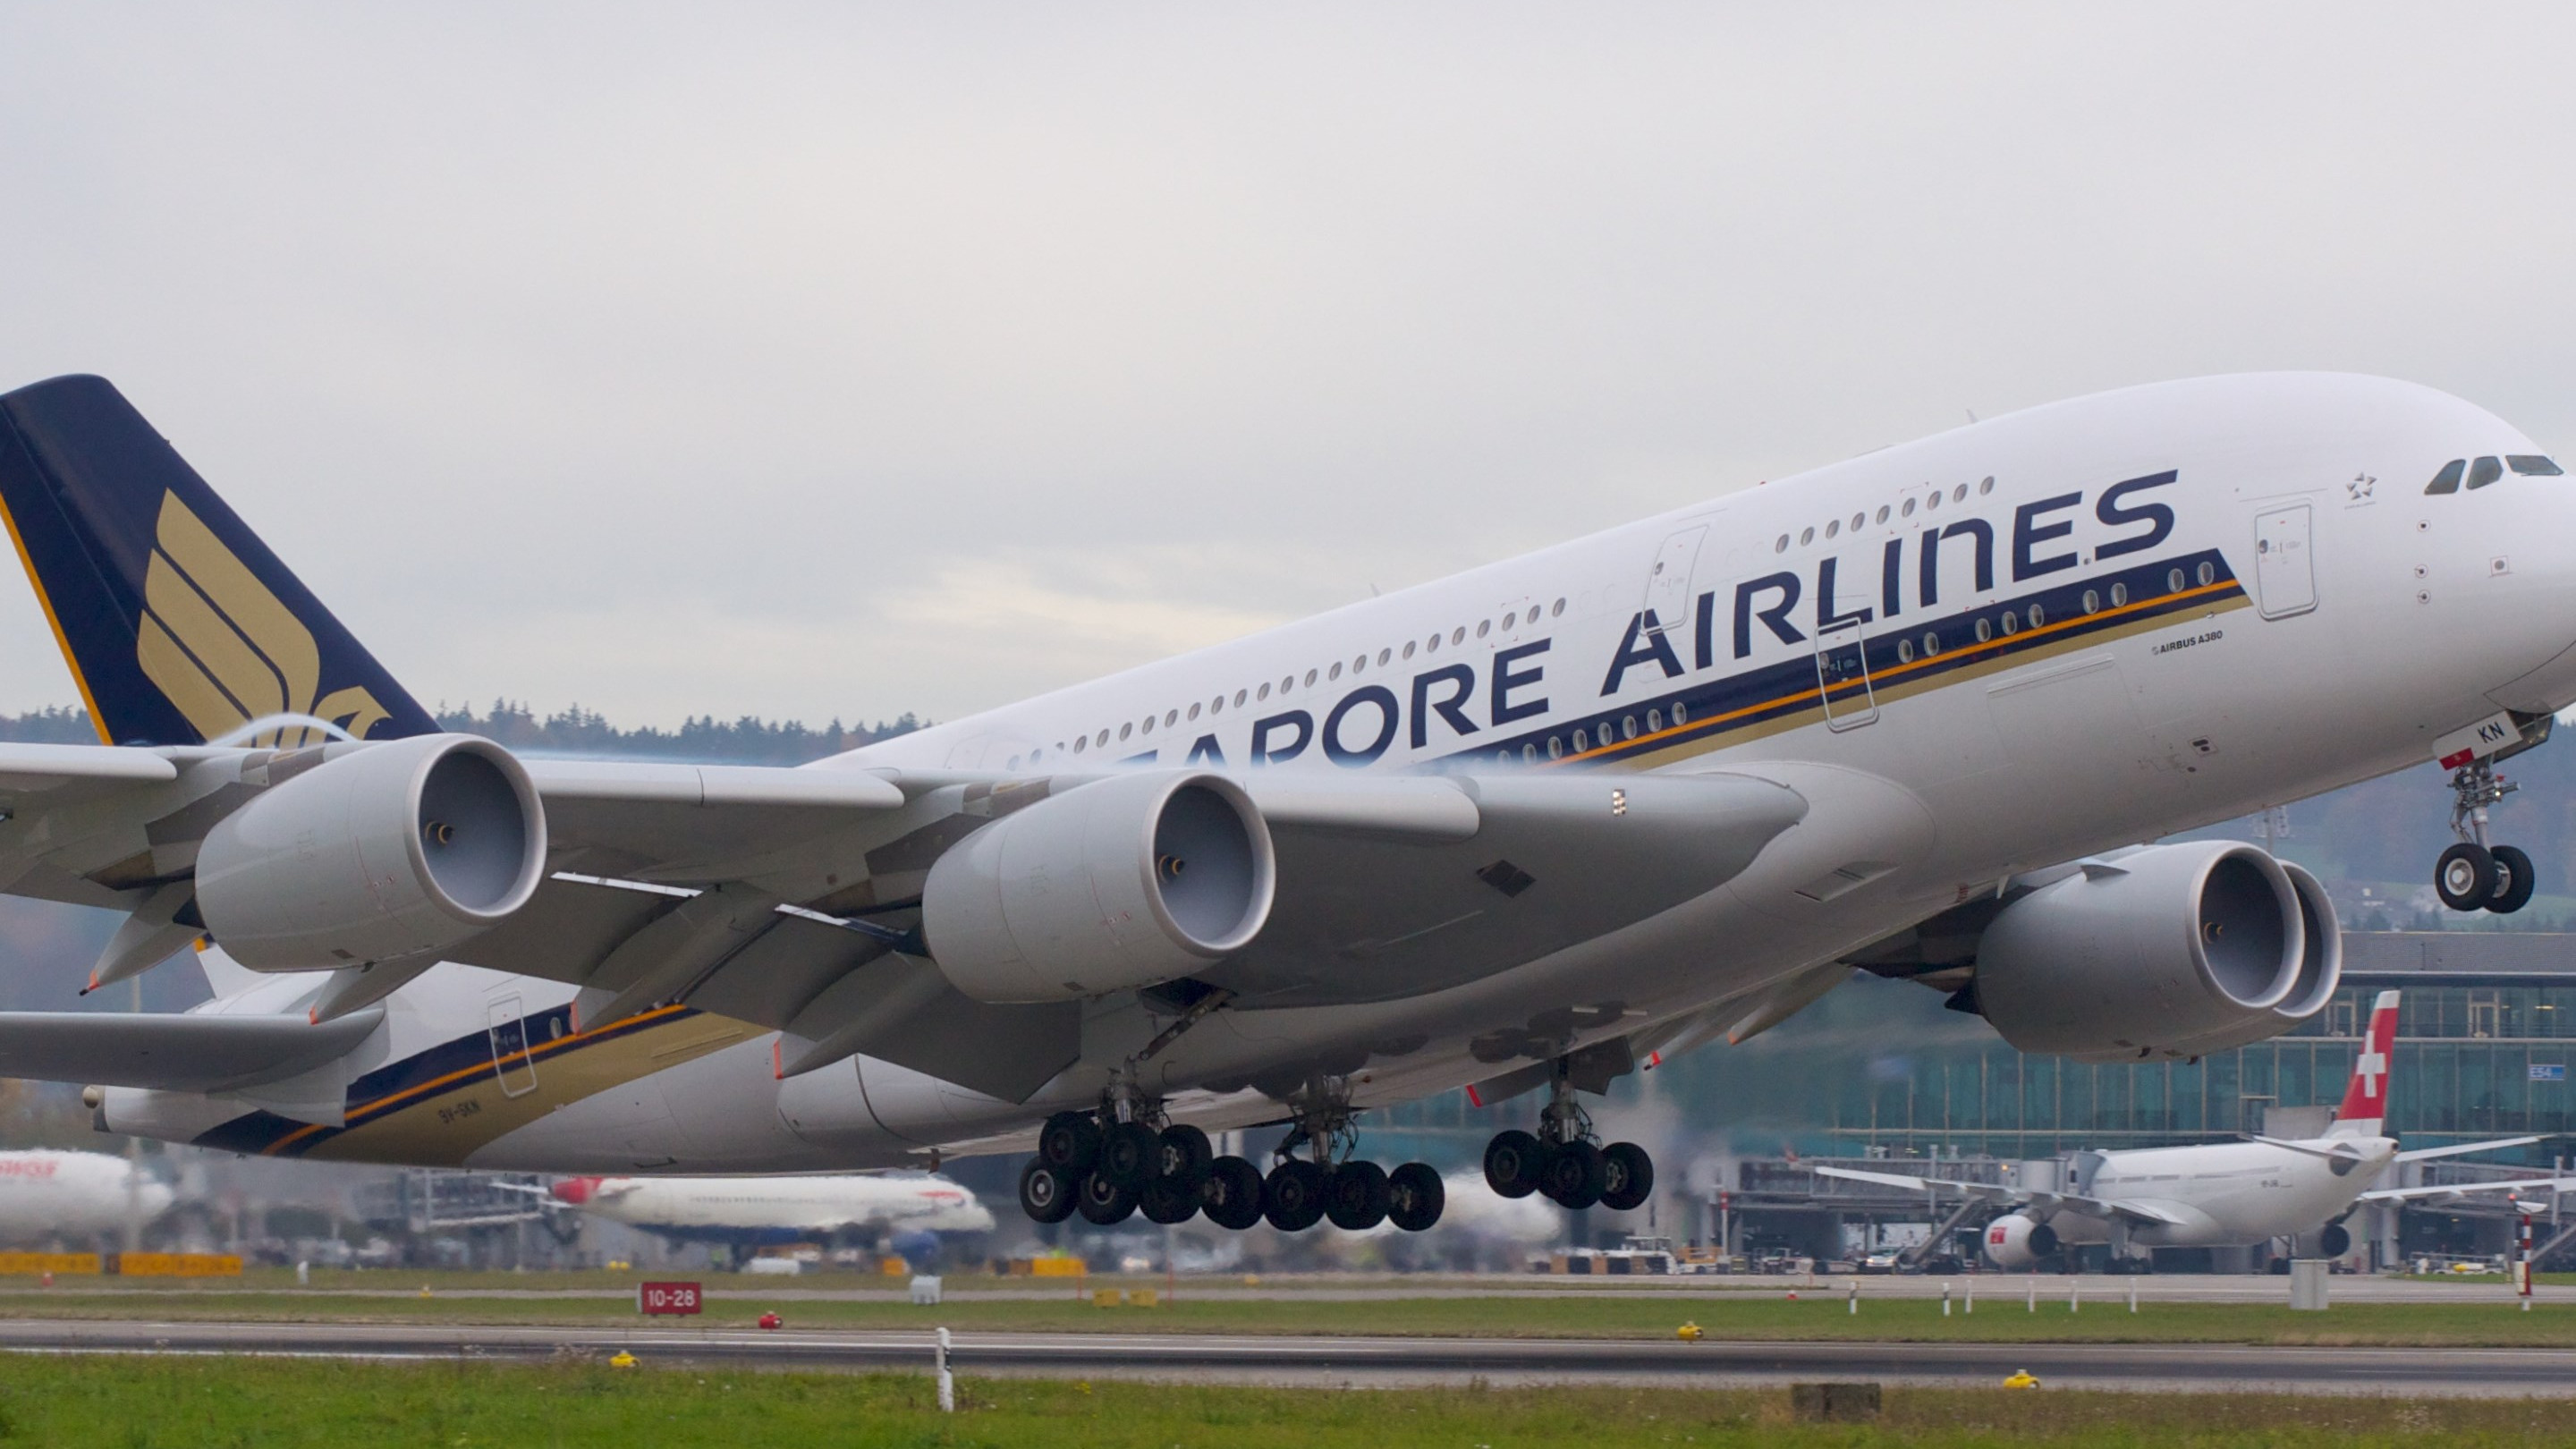 Passenger airplane from Singapore airlines wallpaper 2880x1620